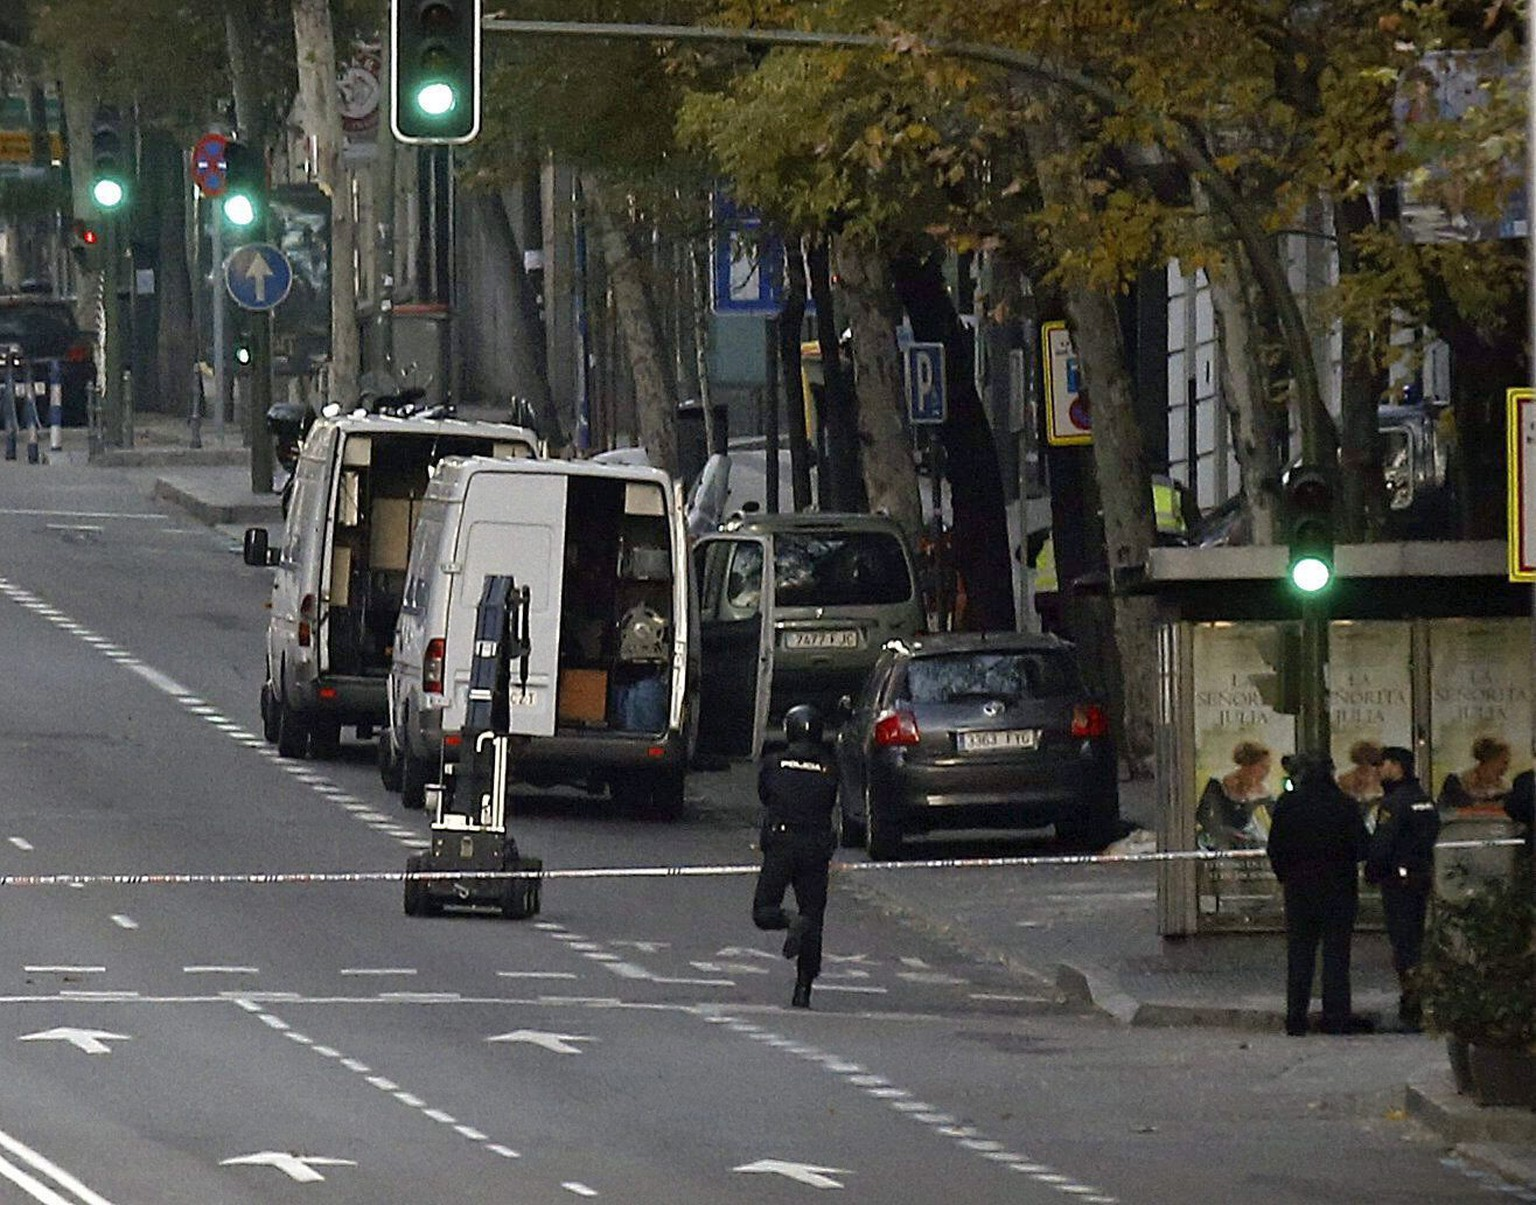 epa04534496 A general view of Genova street in Madrid, Spain, where the police have surrounded the headquarters of ruling Party PP, 19 December 2014. A man was arrested at the site after he crashed a car into the building with two gas cylinders in the vehicle. According to the police, the man detained is a businessman who has 'lost everything'. Members of the bomb squad are working at the place after suspicions about the placement of explosives in the car.  EPA/SERGIO BARRENECHEA